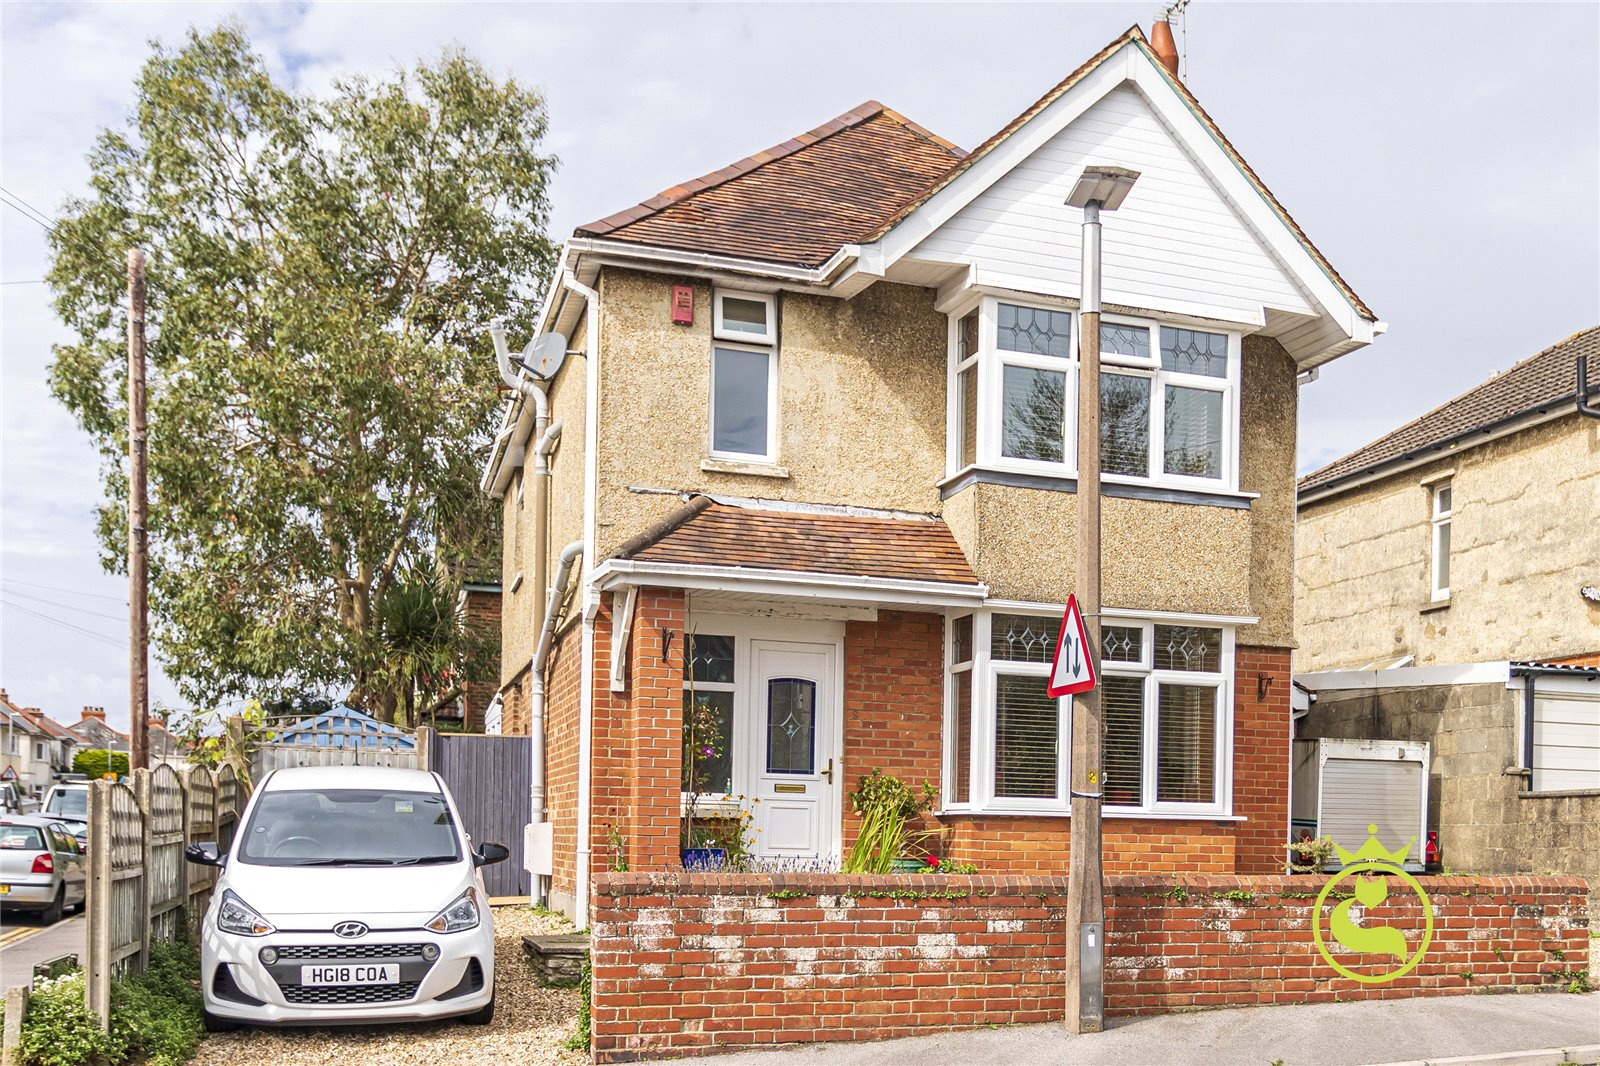 3 bed house for sale in Hardy Road, Lower Parkstone - Property Image 1